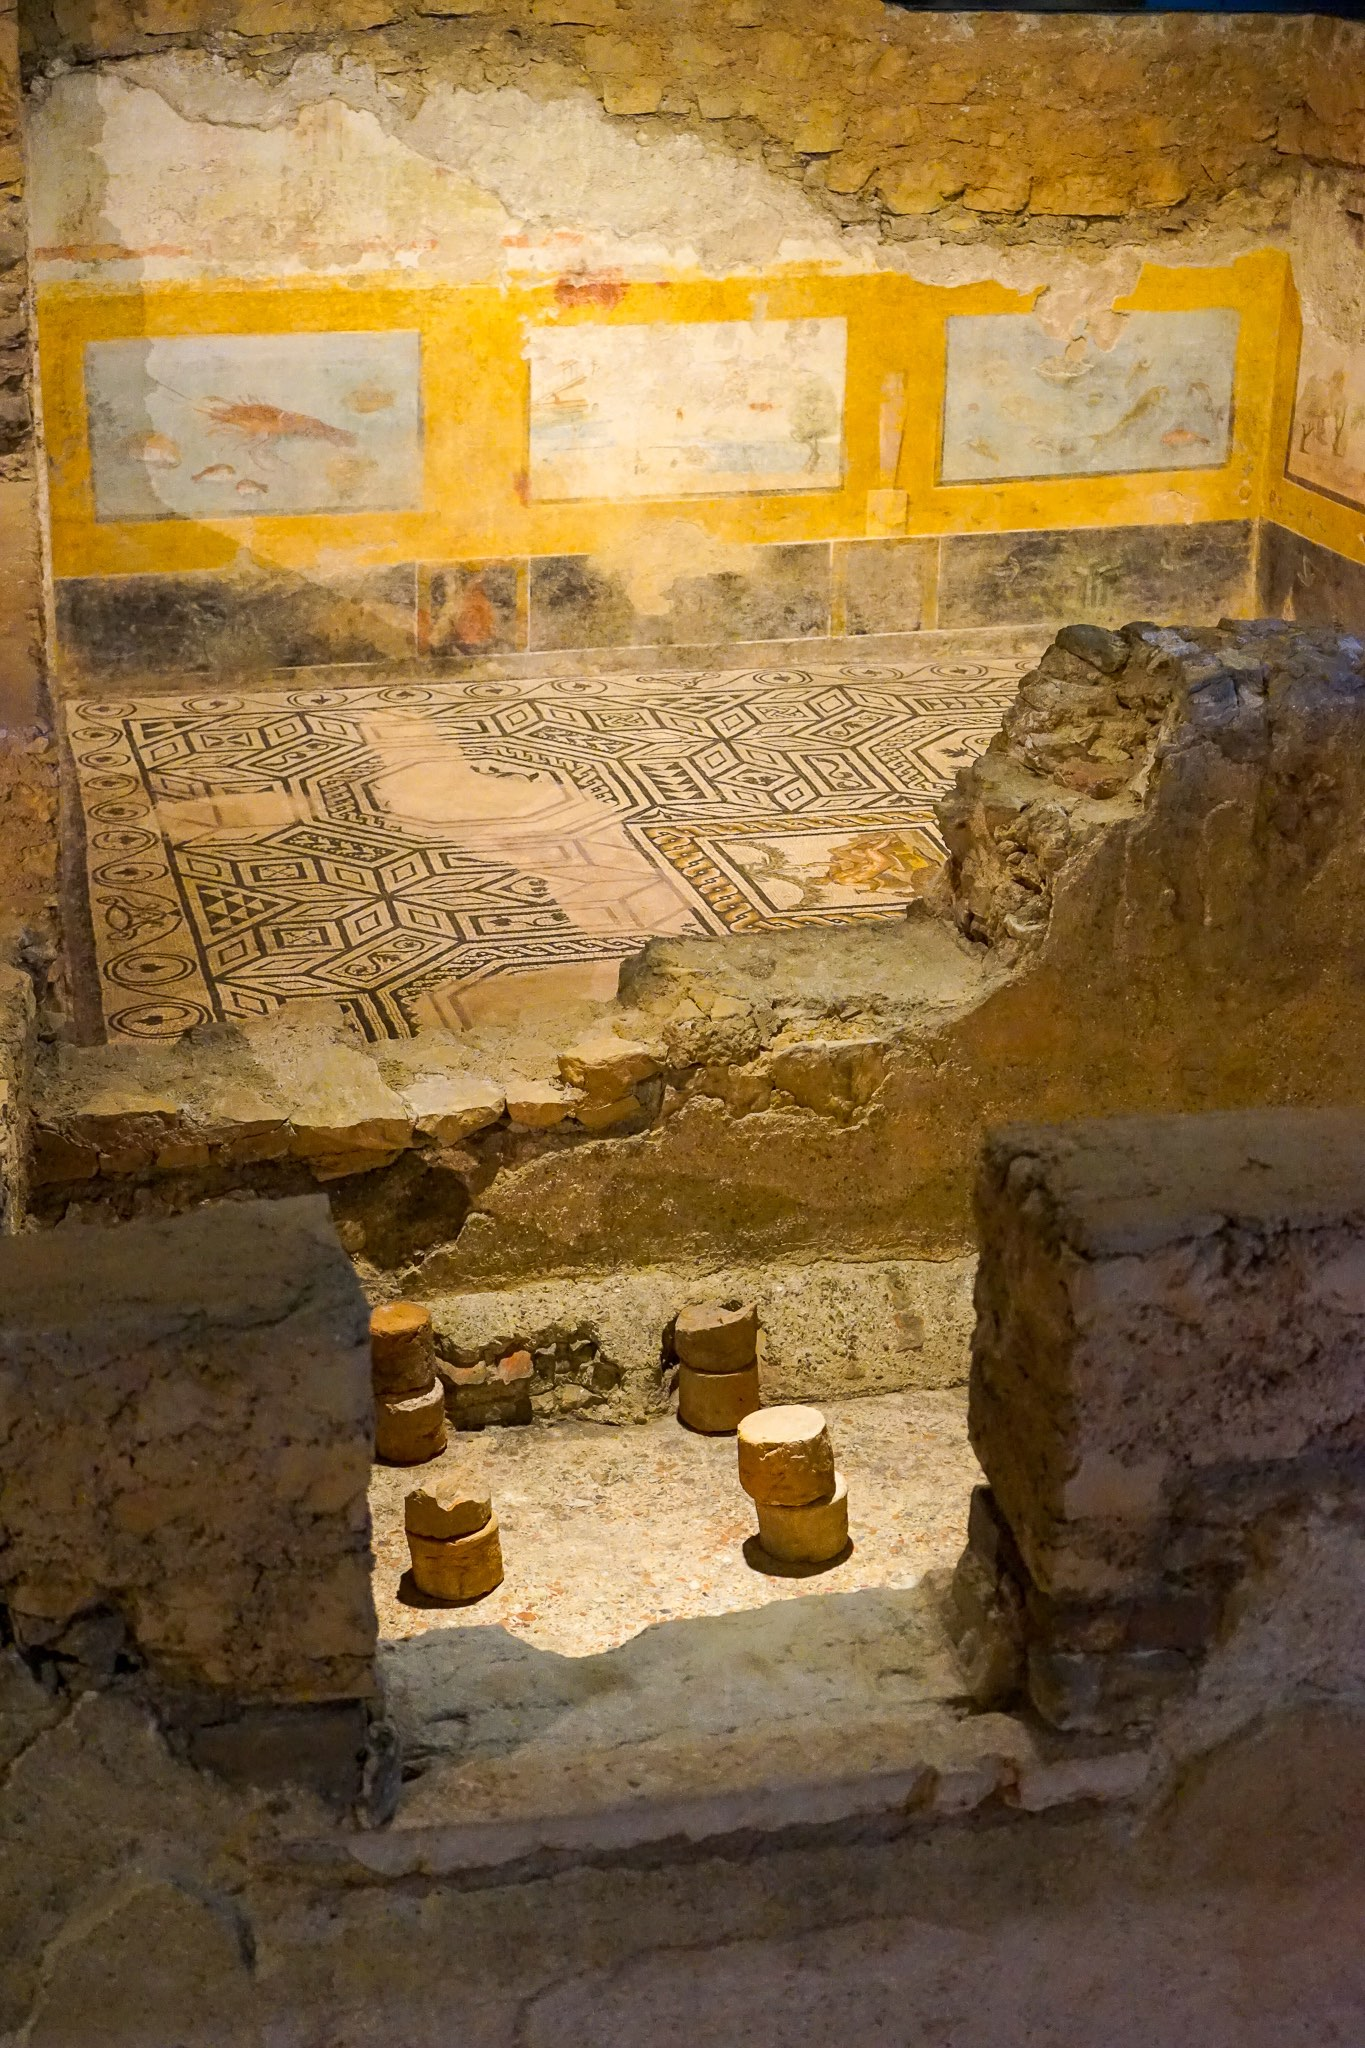 The remains of a Roman domus at Santa Giulia complex in Brescia